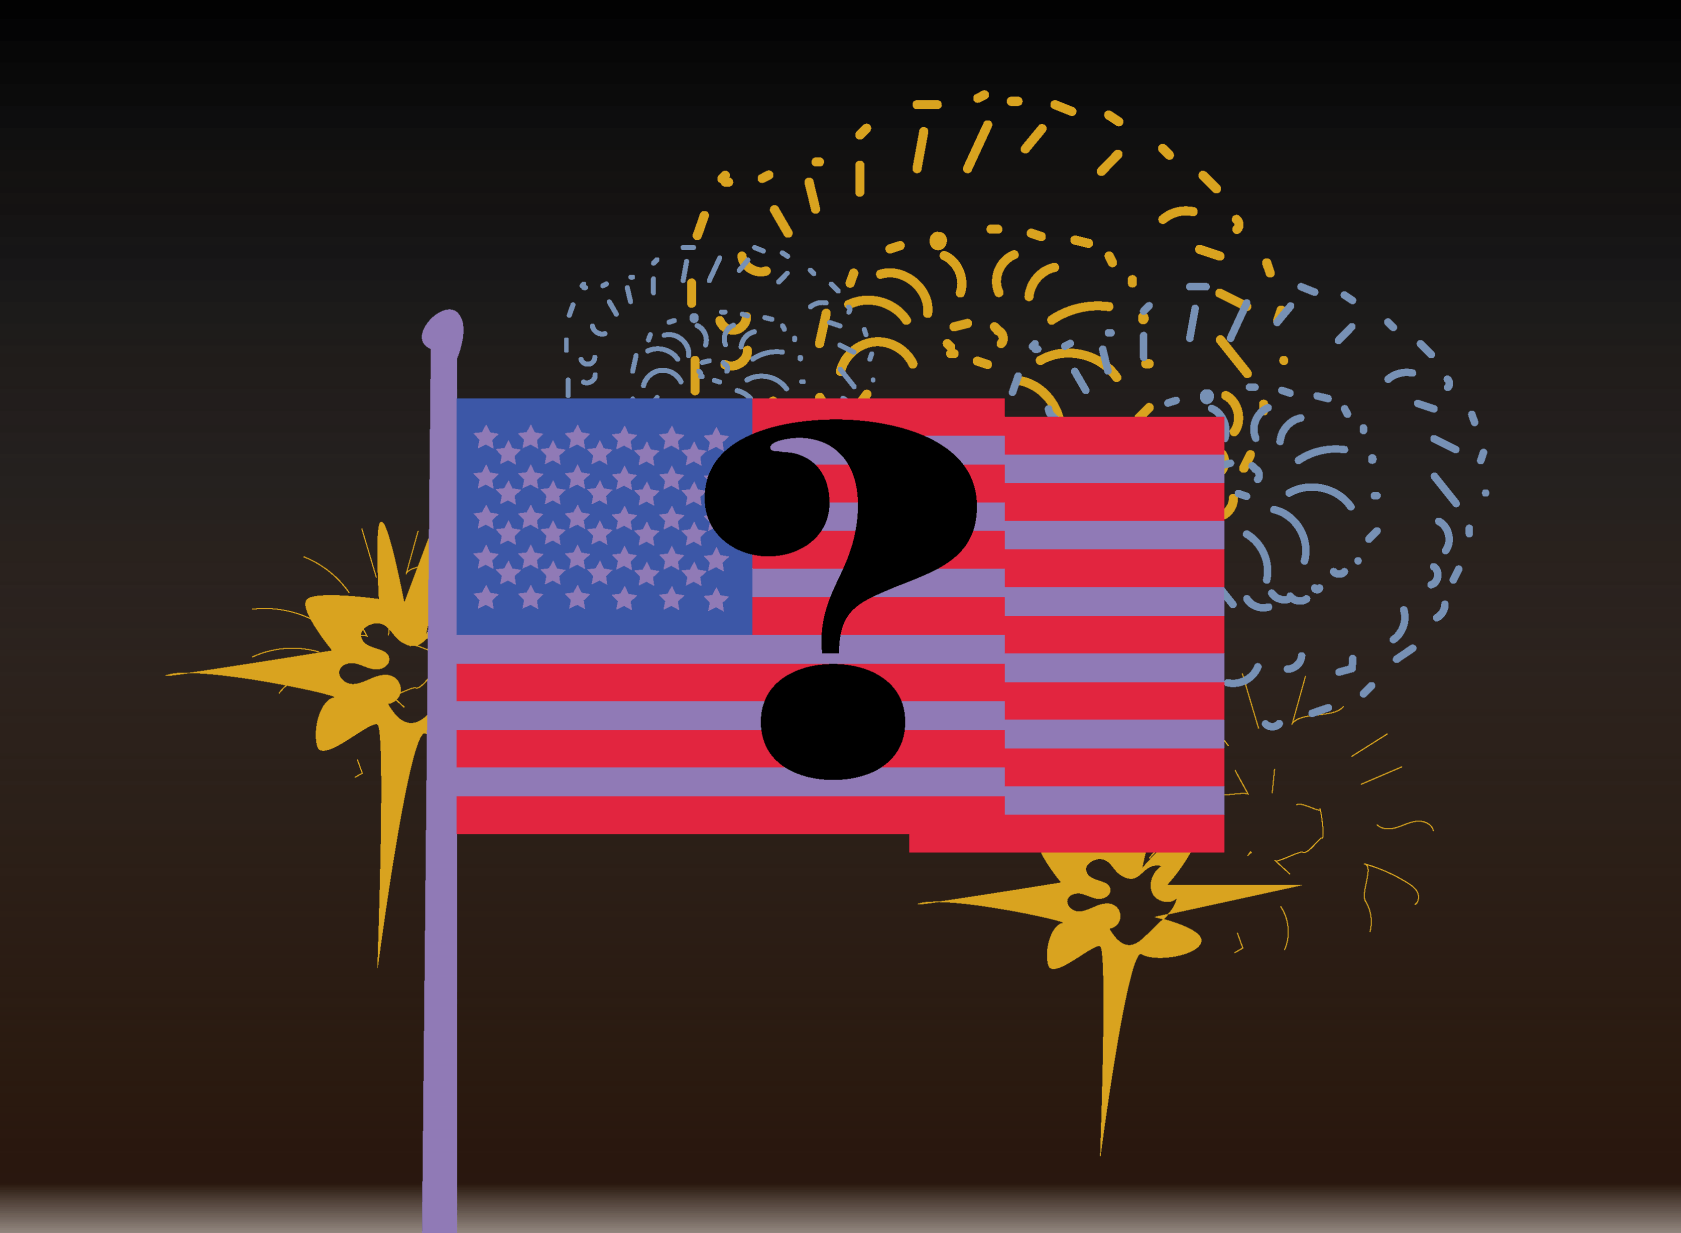 How will the Fourth of July look different this year?